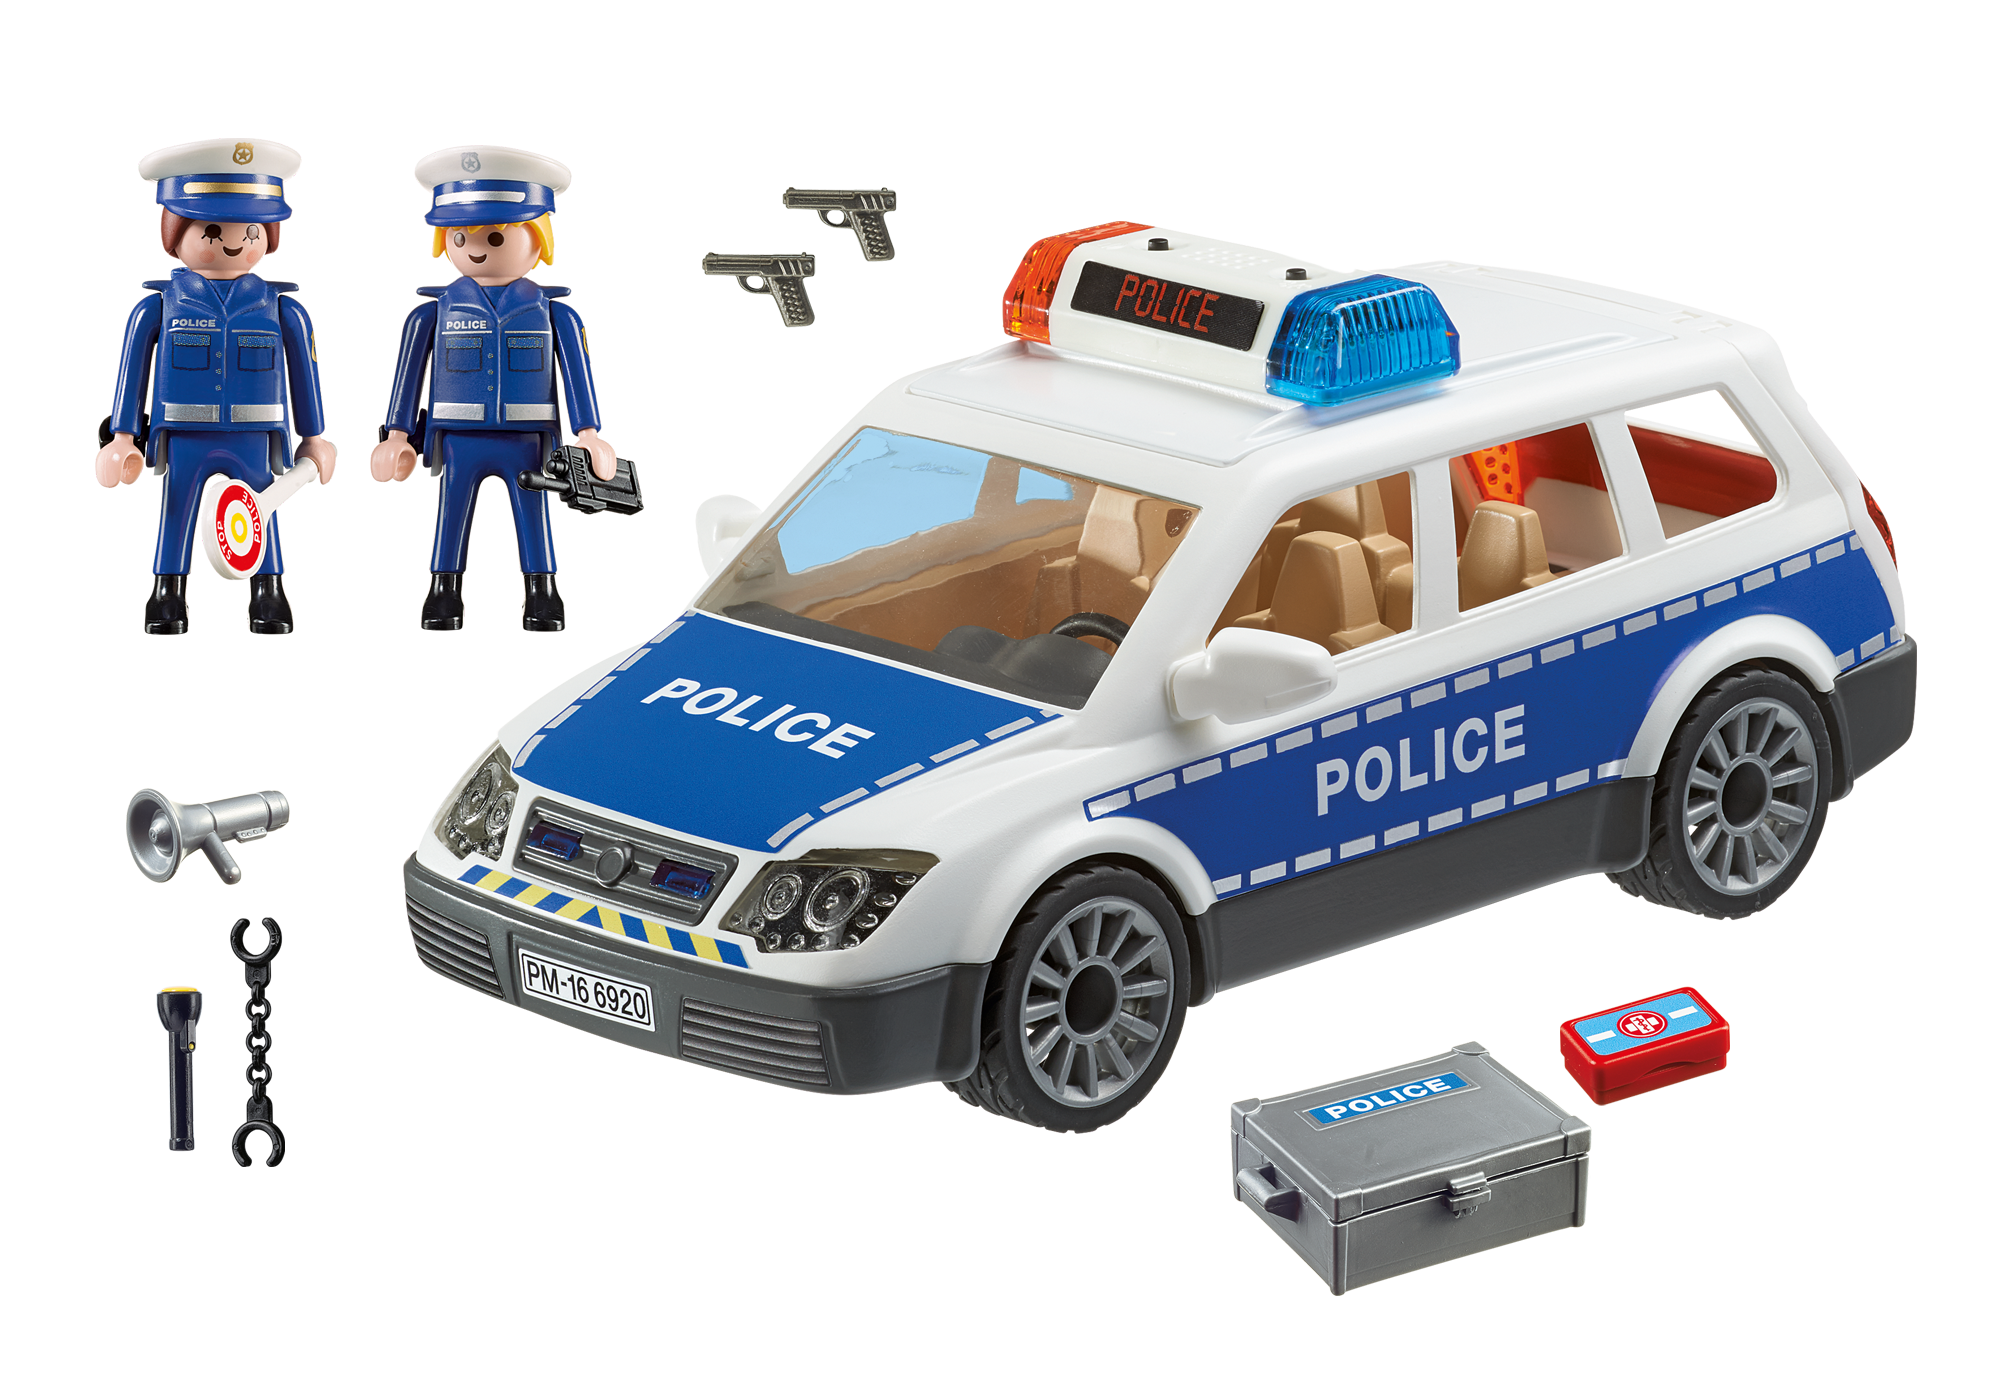 http://media.playmobil.com/i/playmobil/6920_product_box_back/Squad Car with Lights and Sound